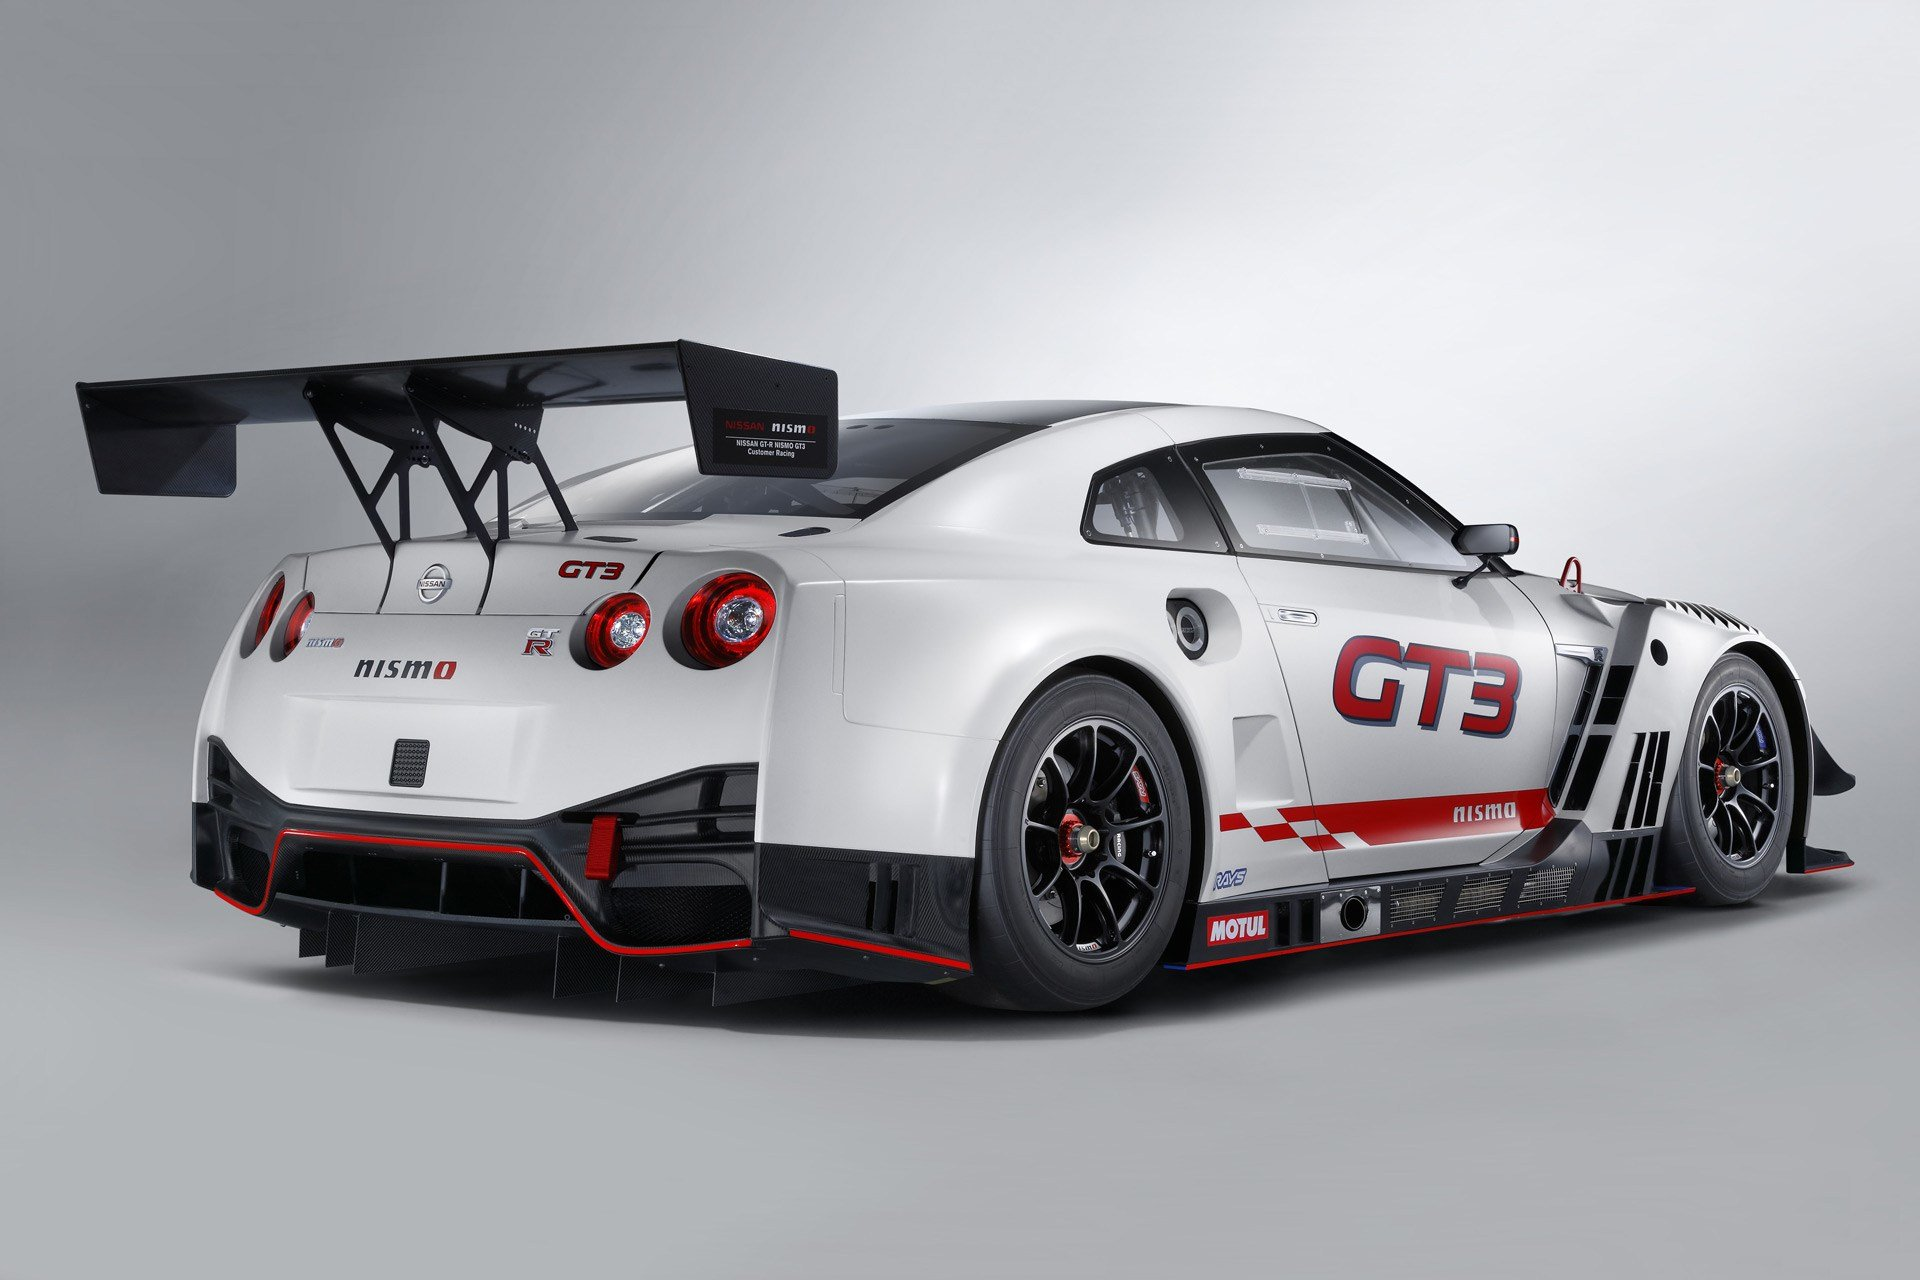 Latest Nissan Updates Gt R Nismo Gt3 Race Car For 2019 Free Download